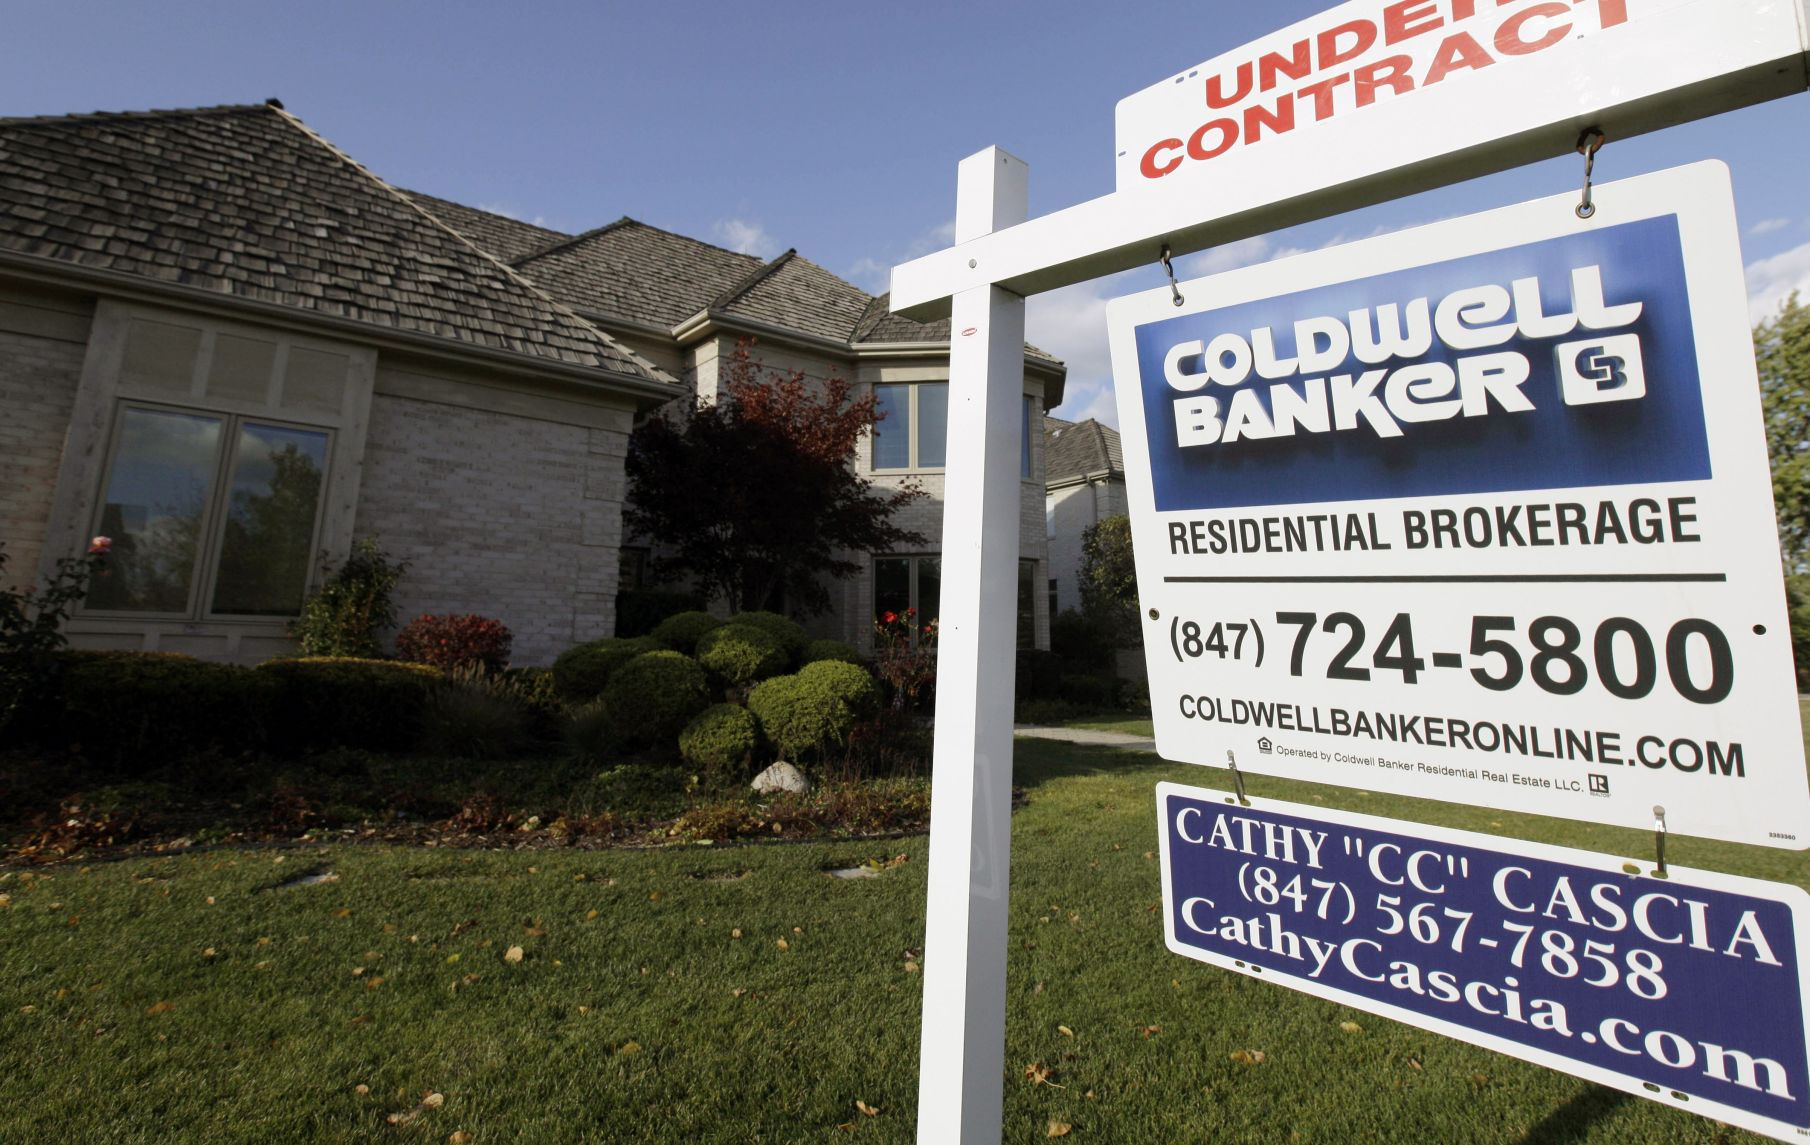 Survey indicates a potential shift in Illinois housing market